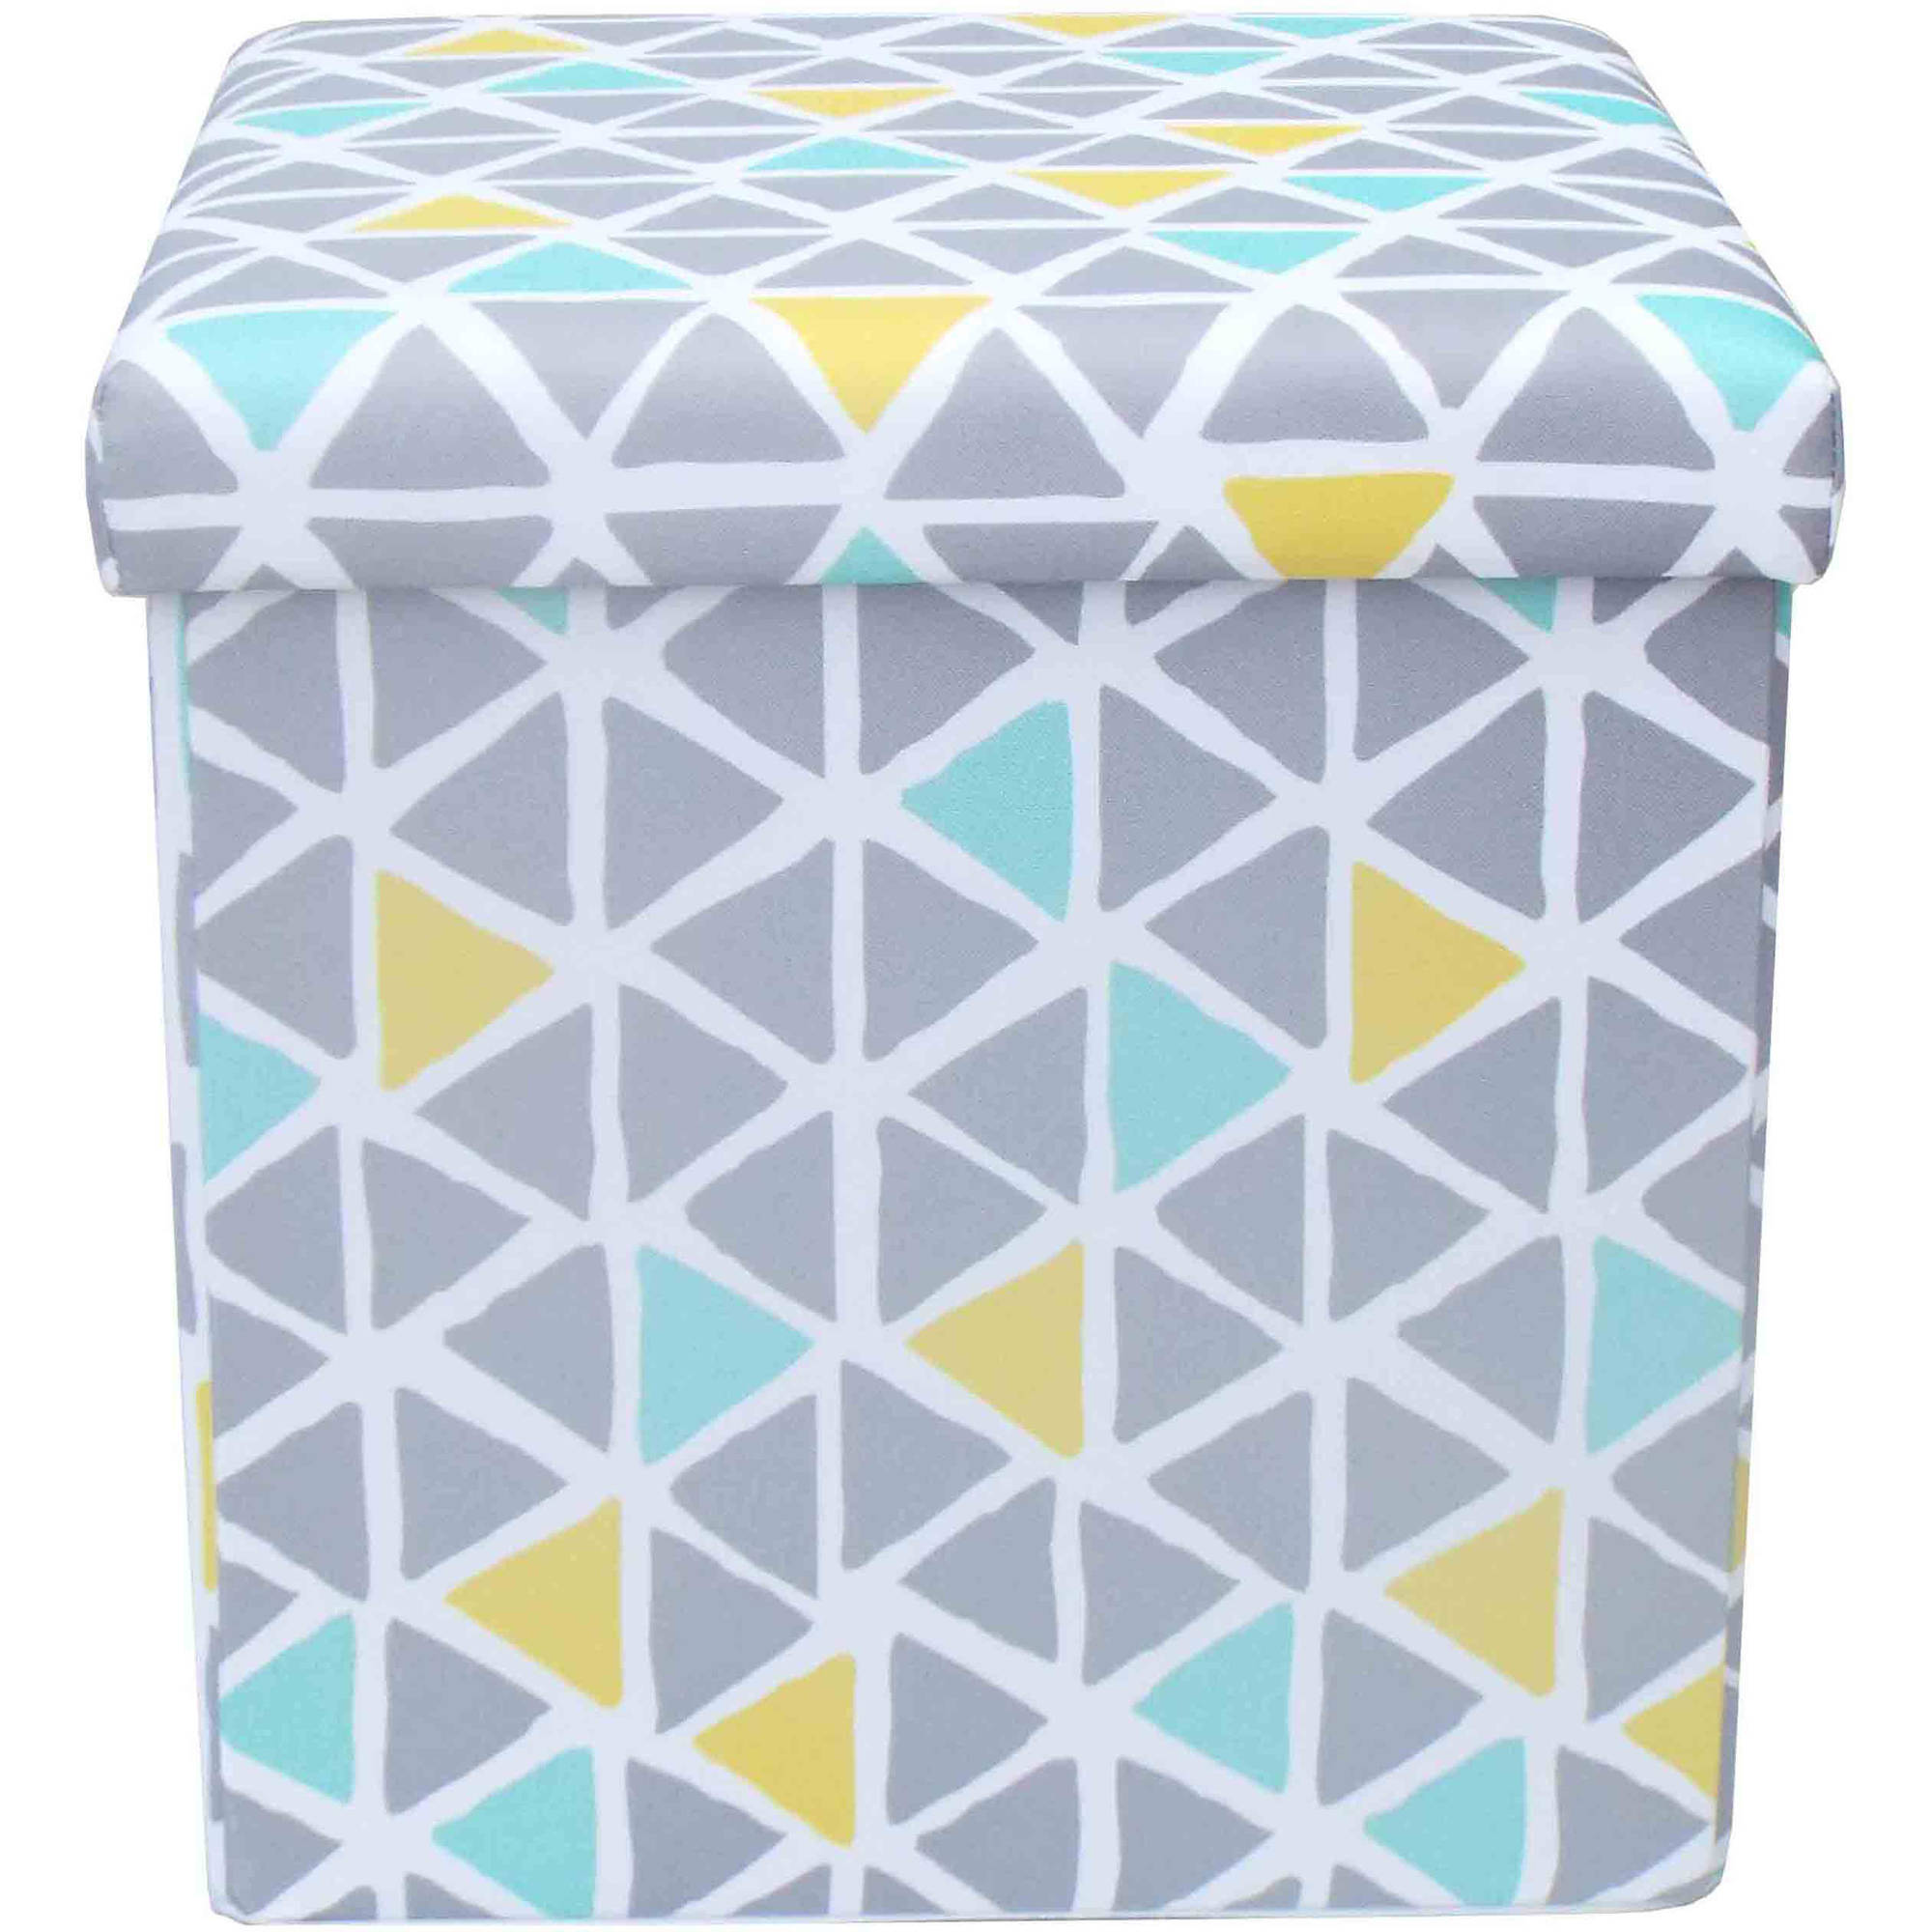 Mainstays Collapsible Storage Ottoman, Multiple Colors